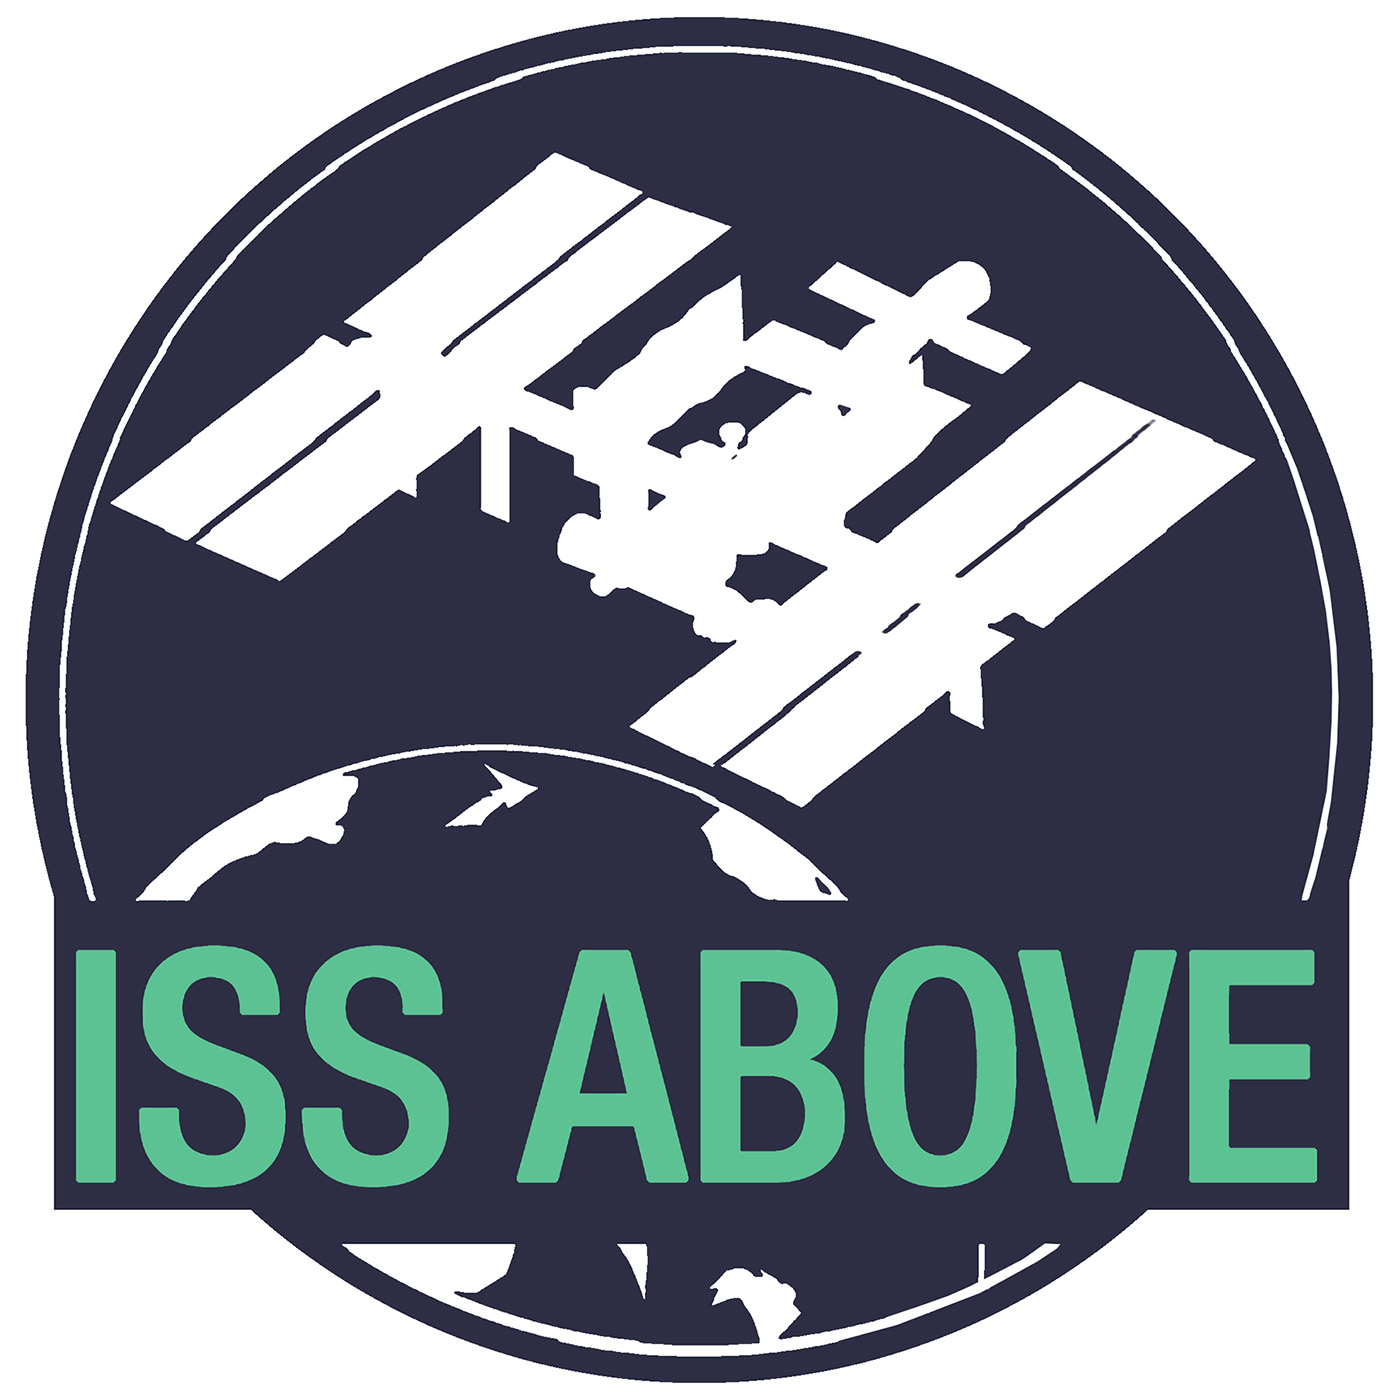 iss above logo square